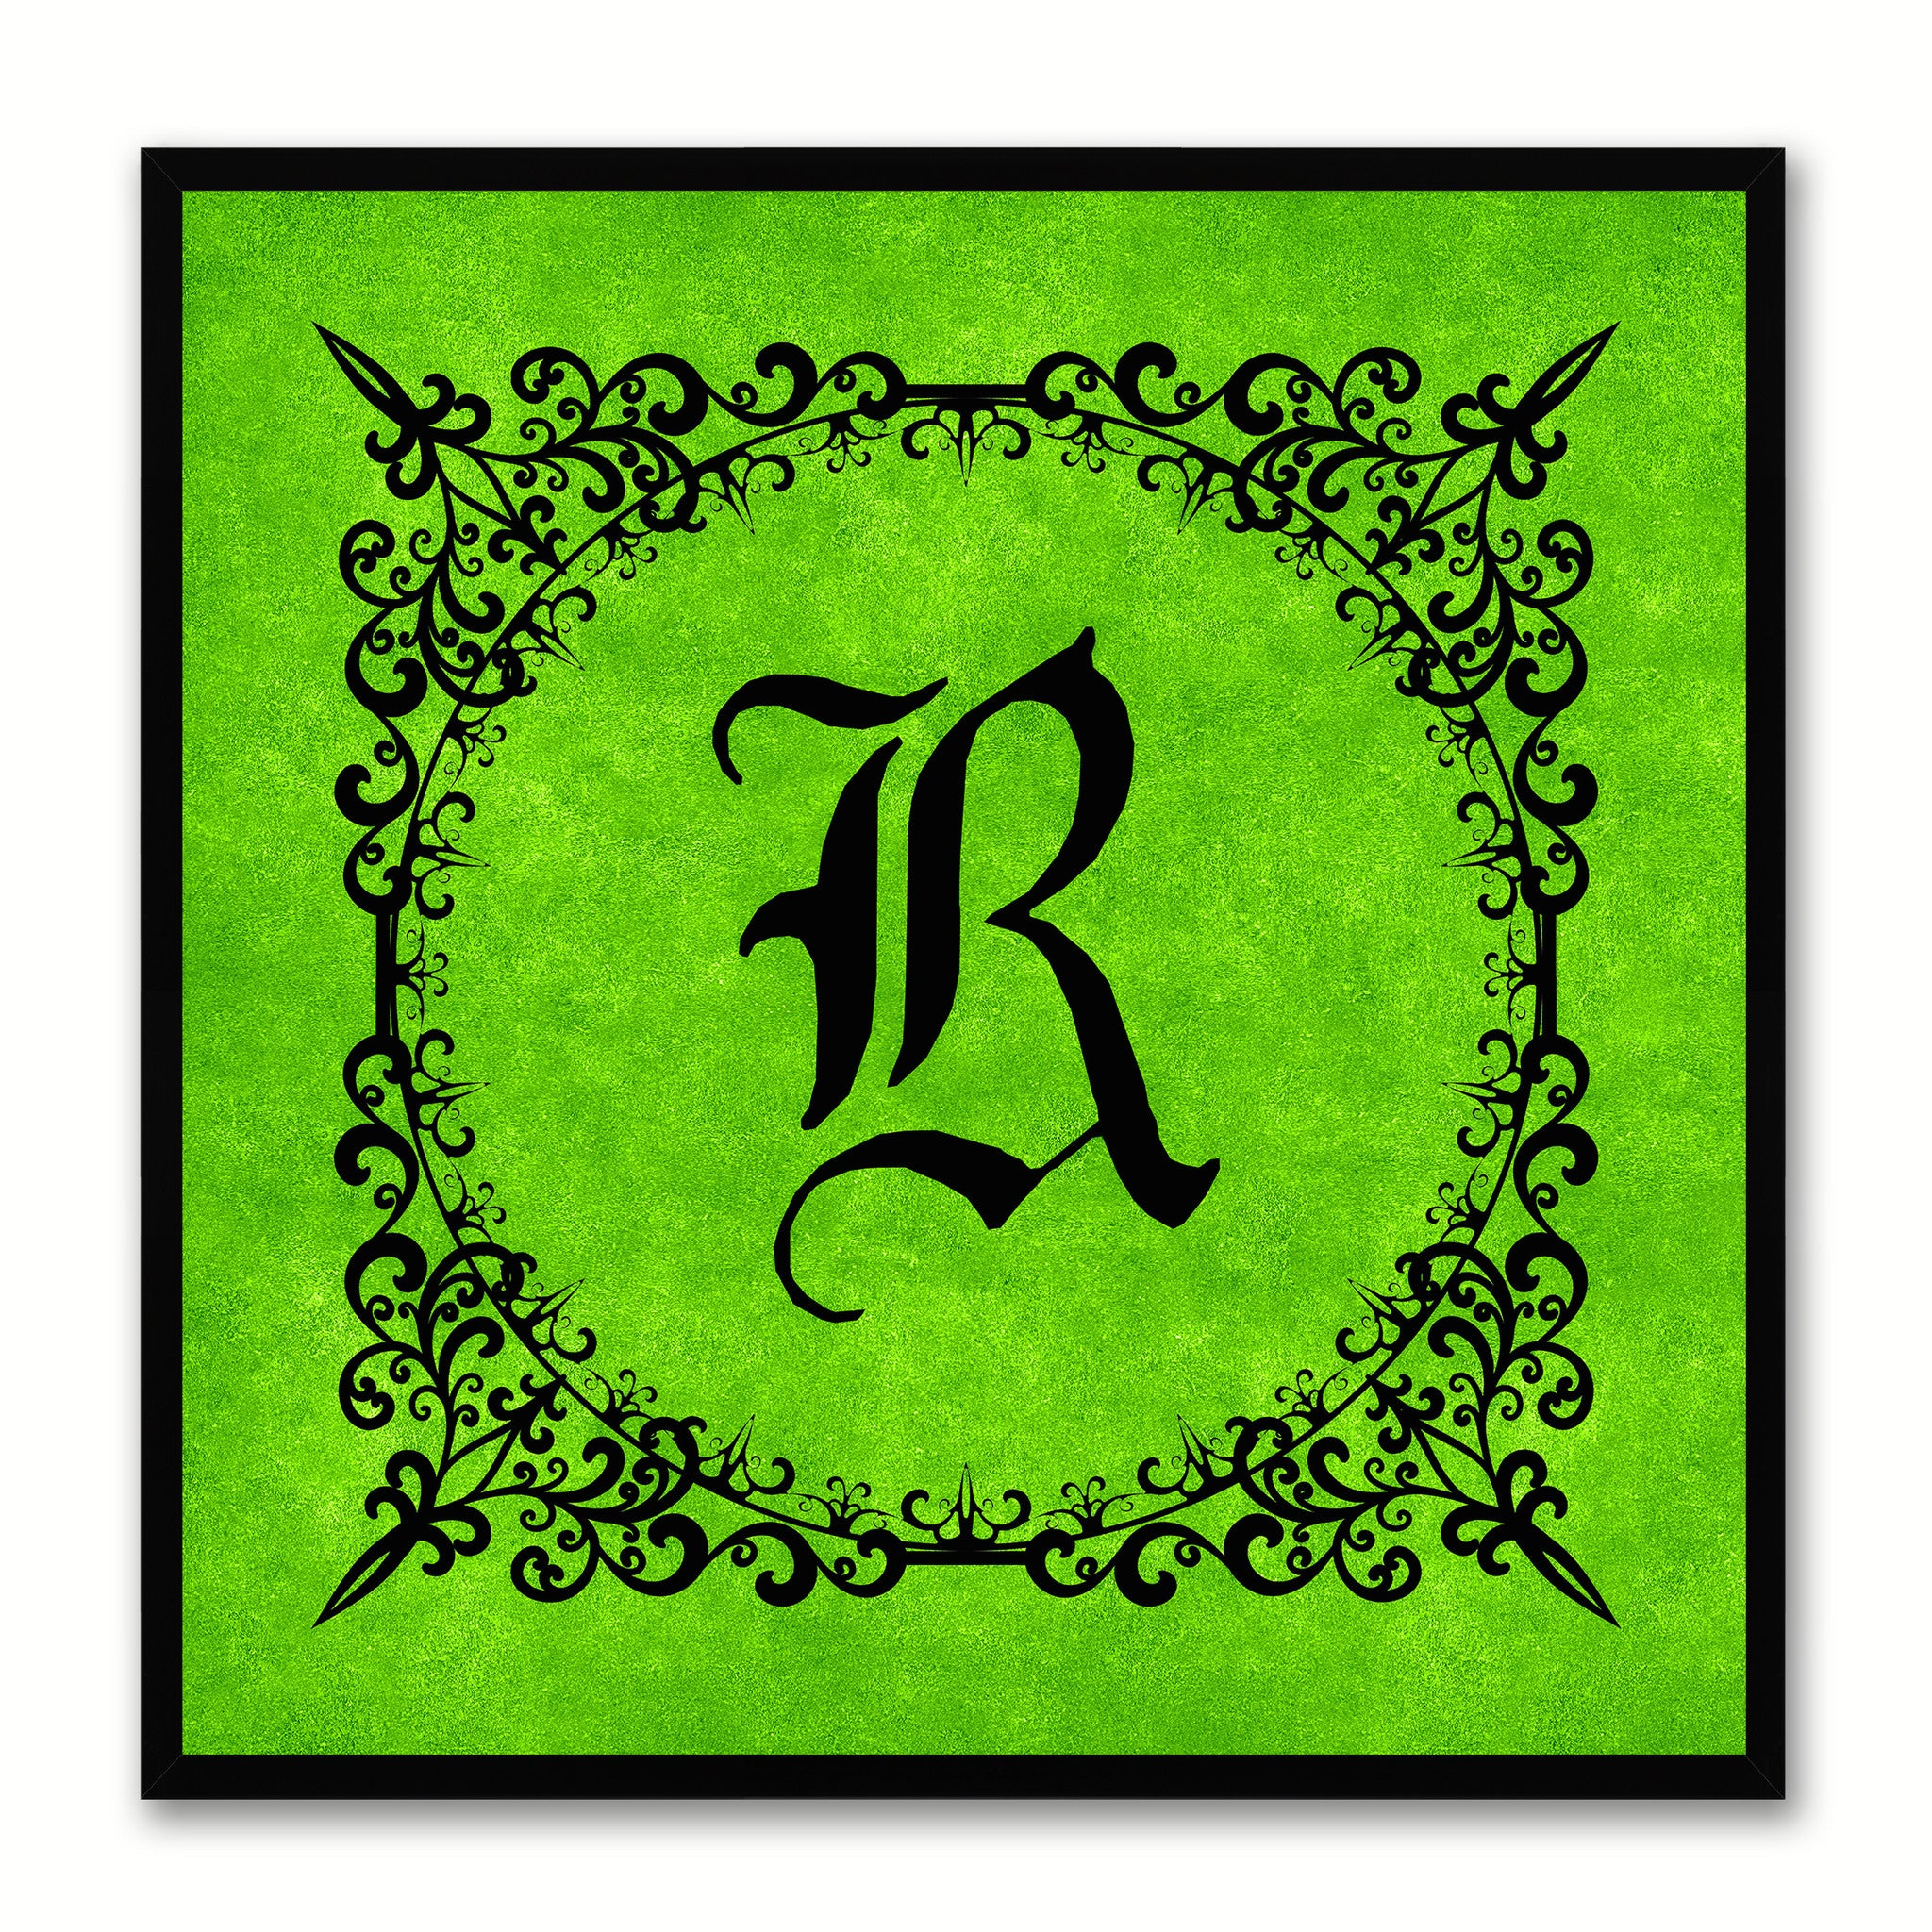 Alphabet R Green Canvas Print Black Frame Kids Bedroom Wall Décor Home Art